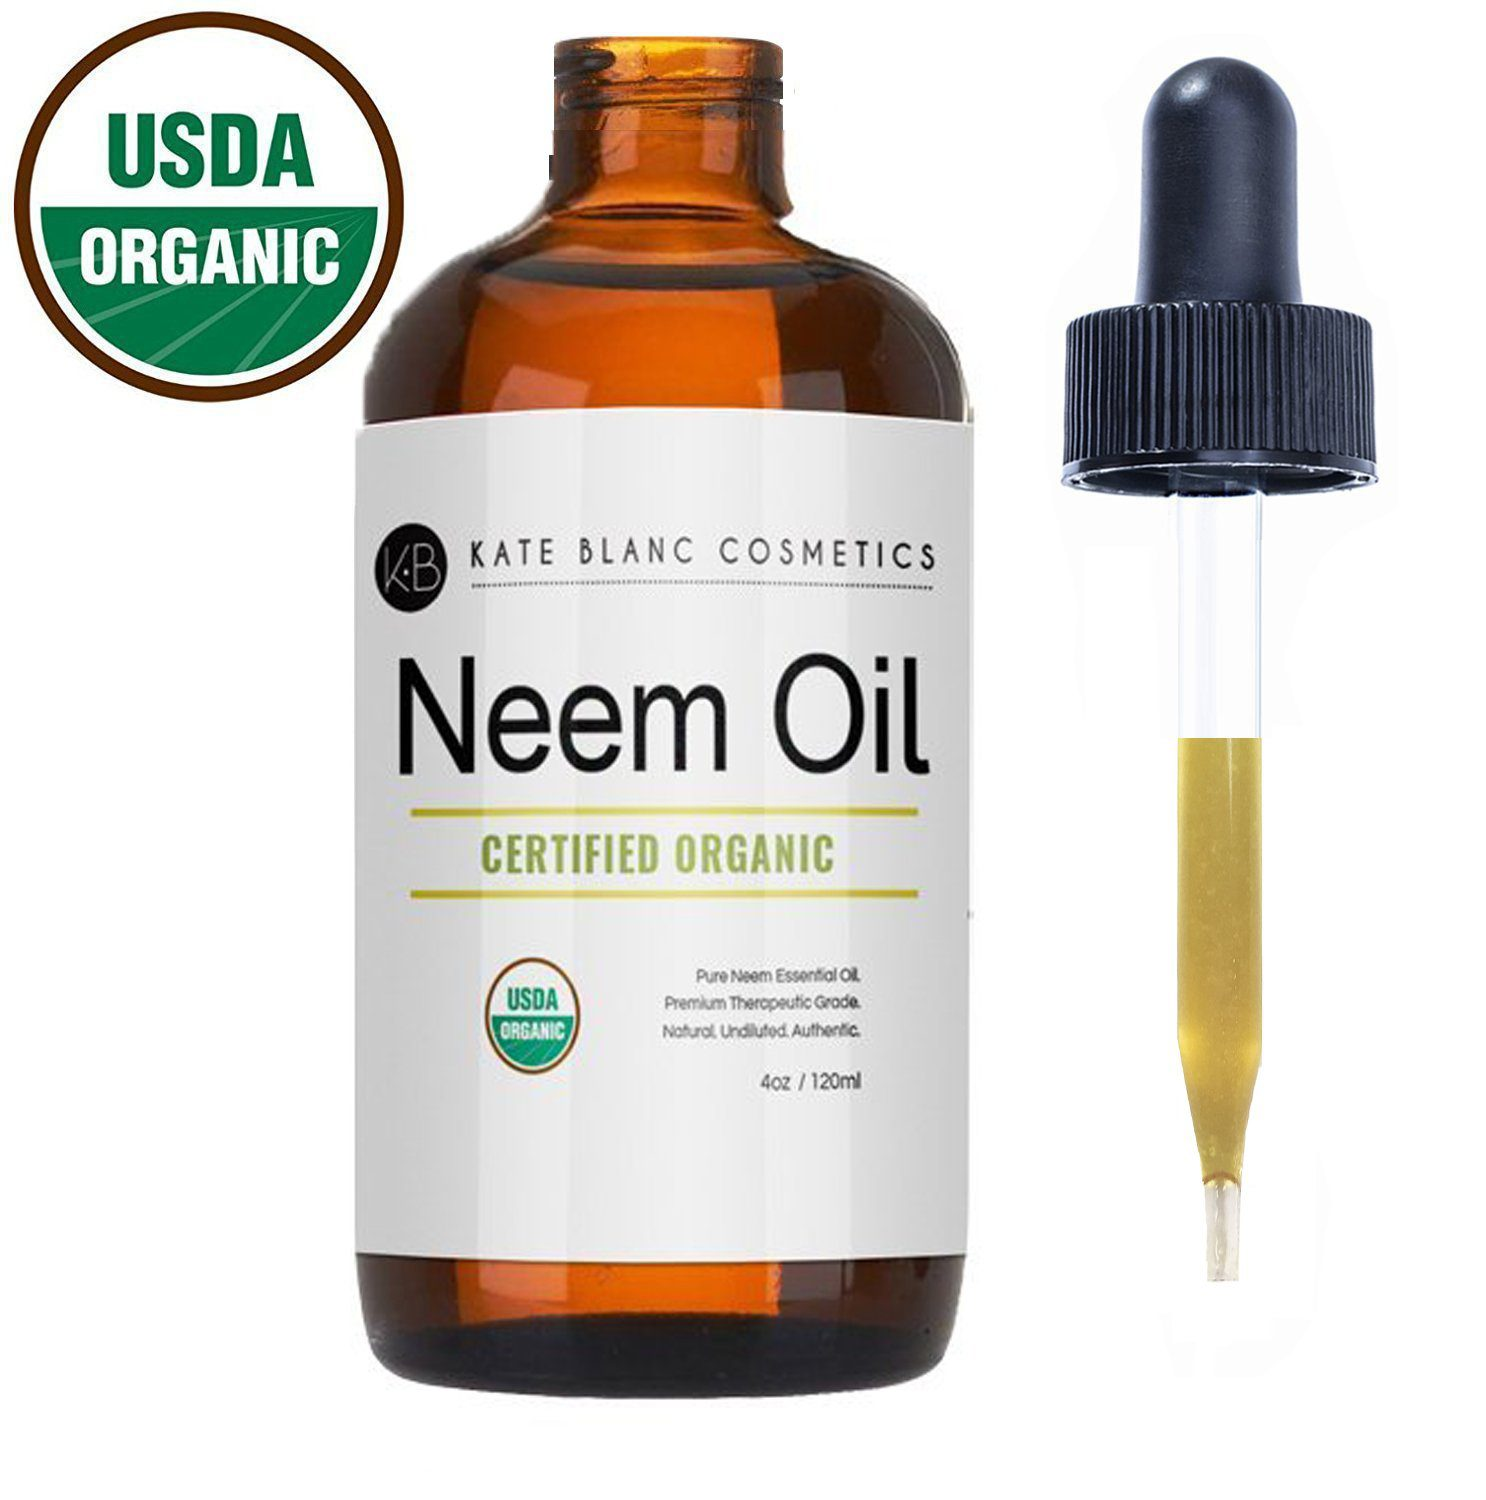 Neem Oil (4oz) by Kate Blanc. USDA Certified Organic, Virgin, Cold Pressed, 100% Pure. Great for Hair, Skin, Nails. Natural Anti Aging Moisturizer. 1-Year Guarantee,